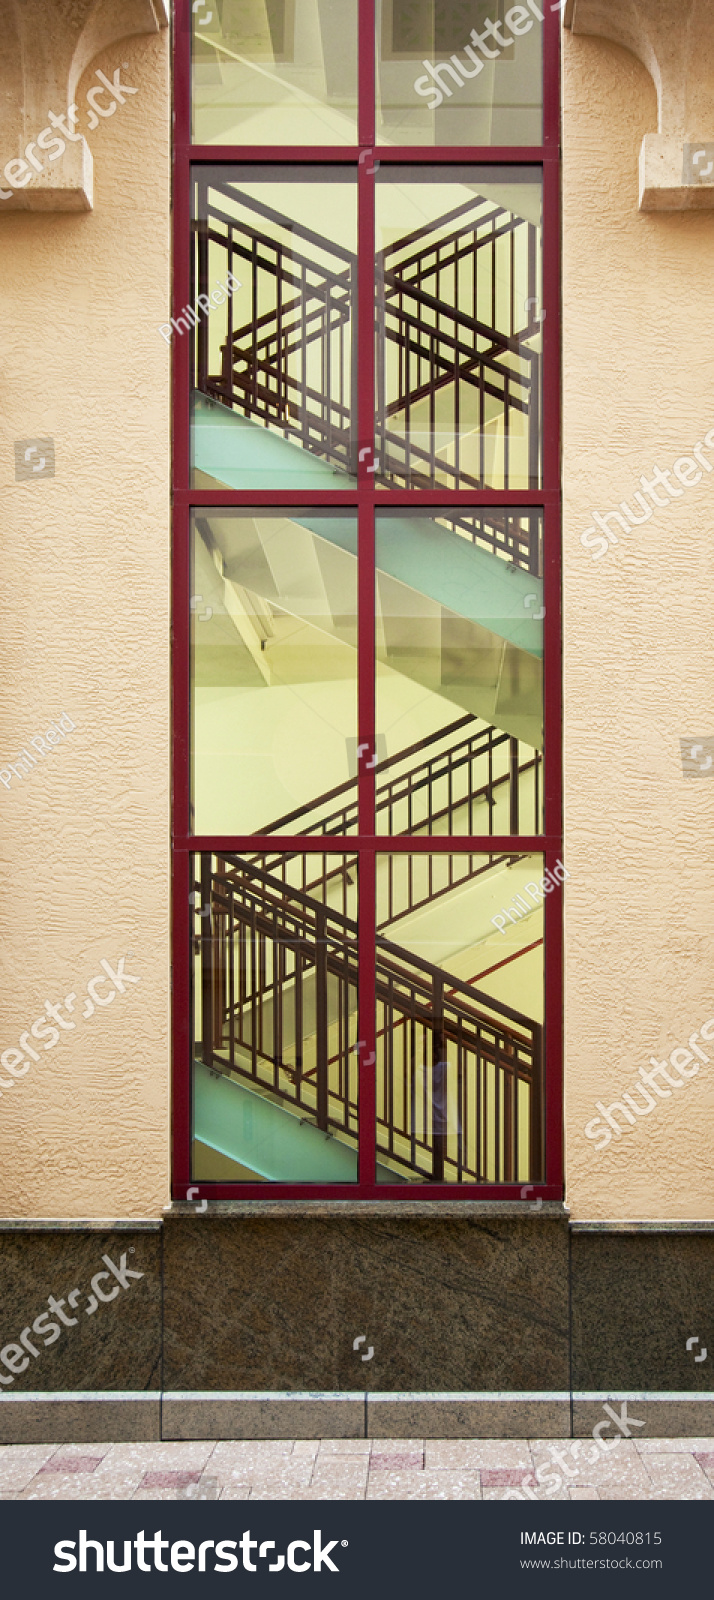 Interior Stairs As Seen Through Large Window From Outside